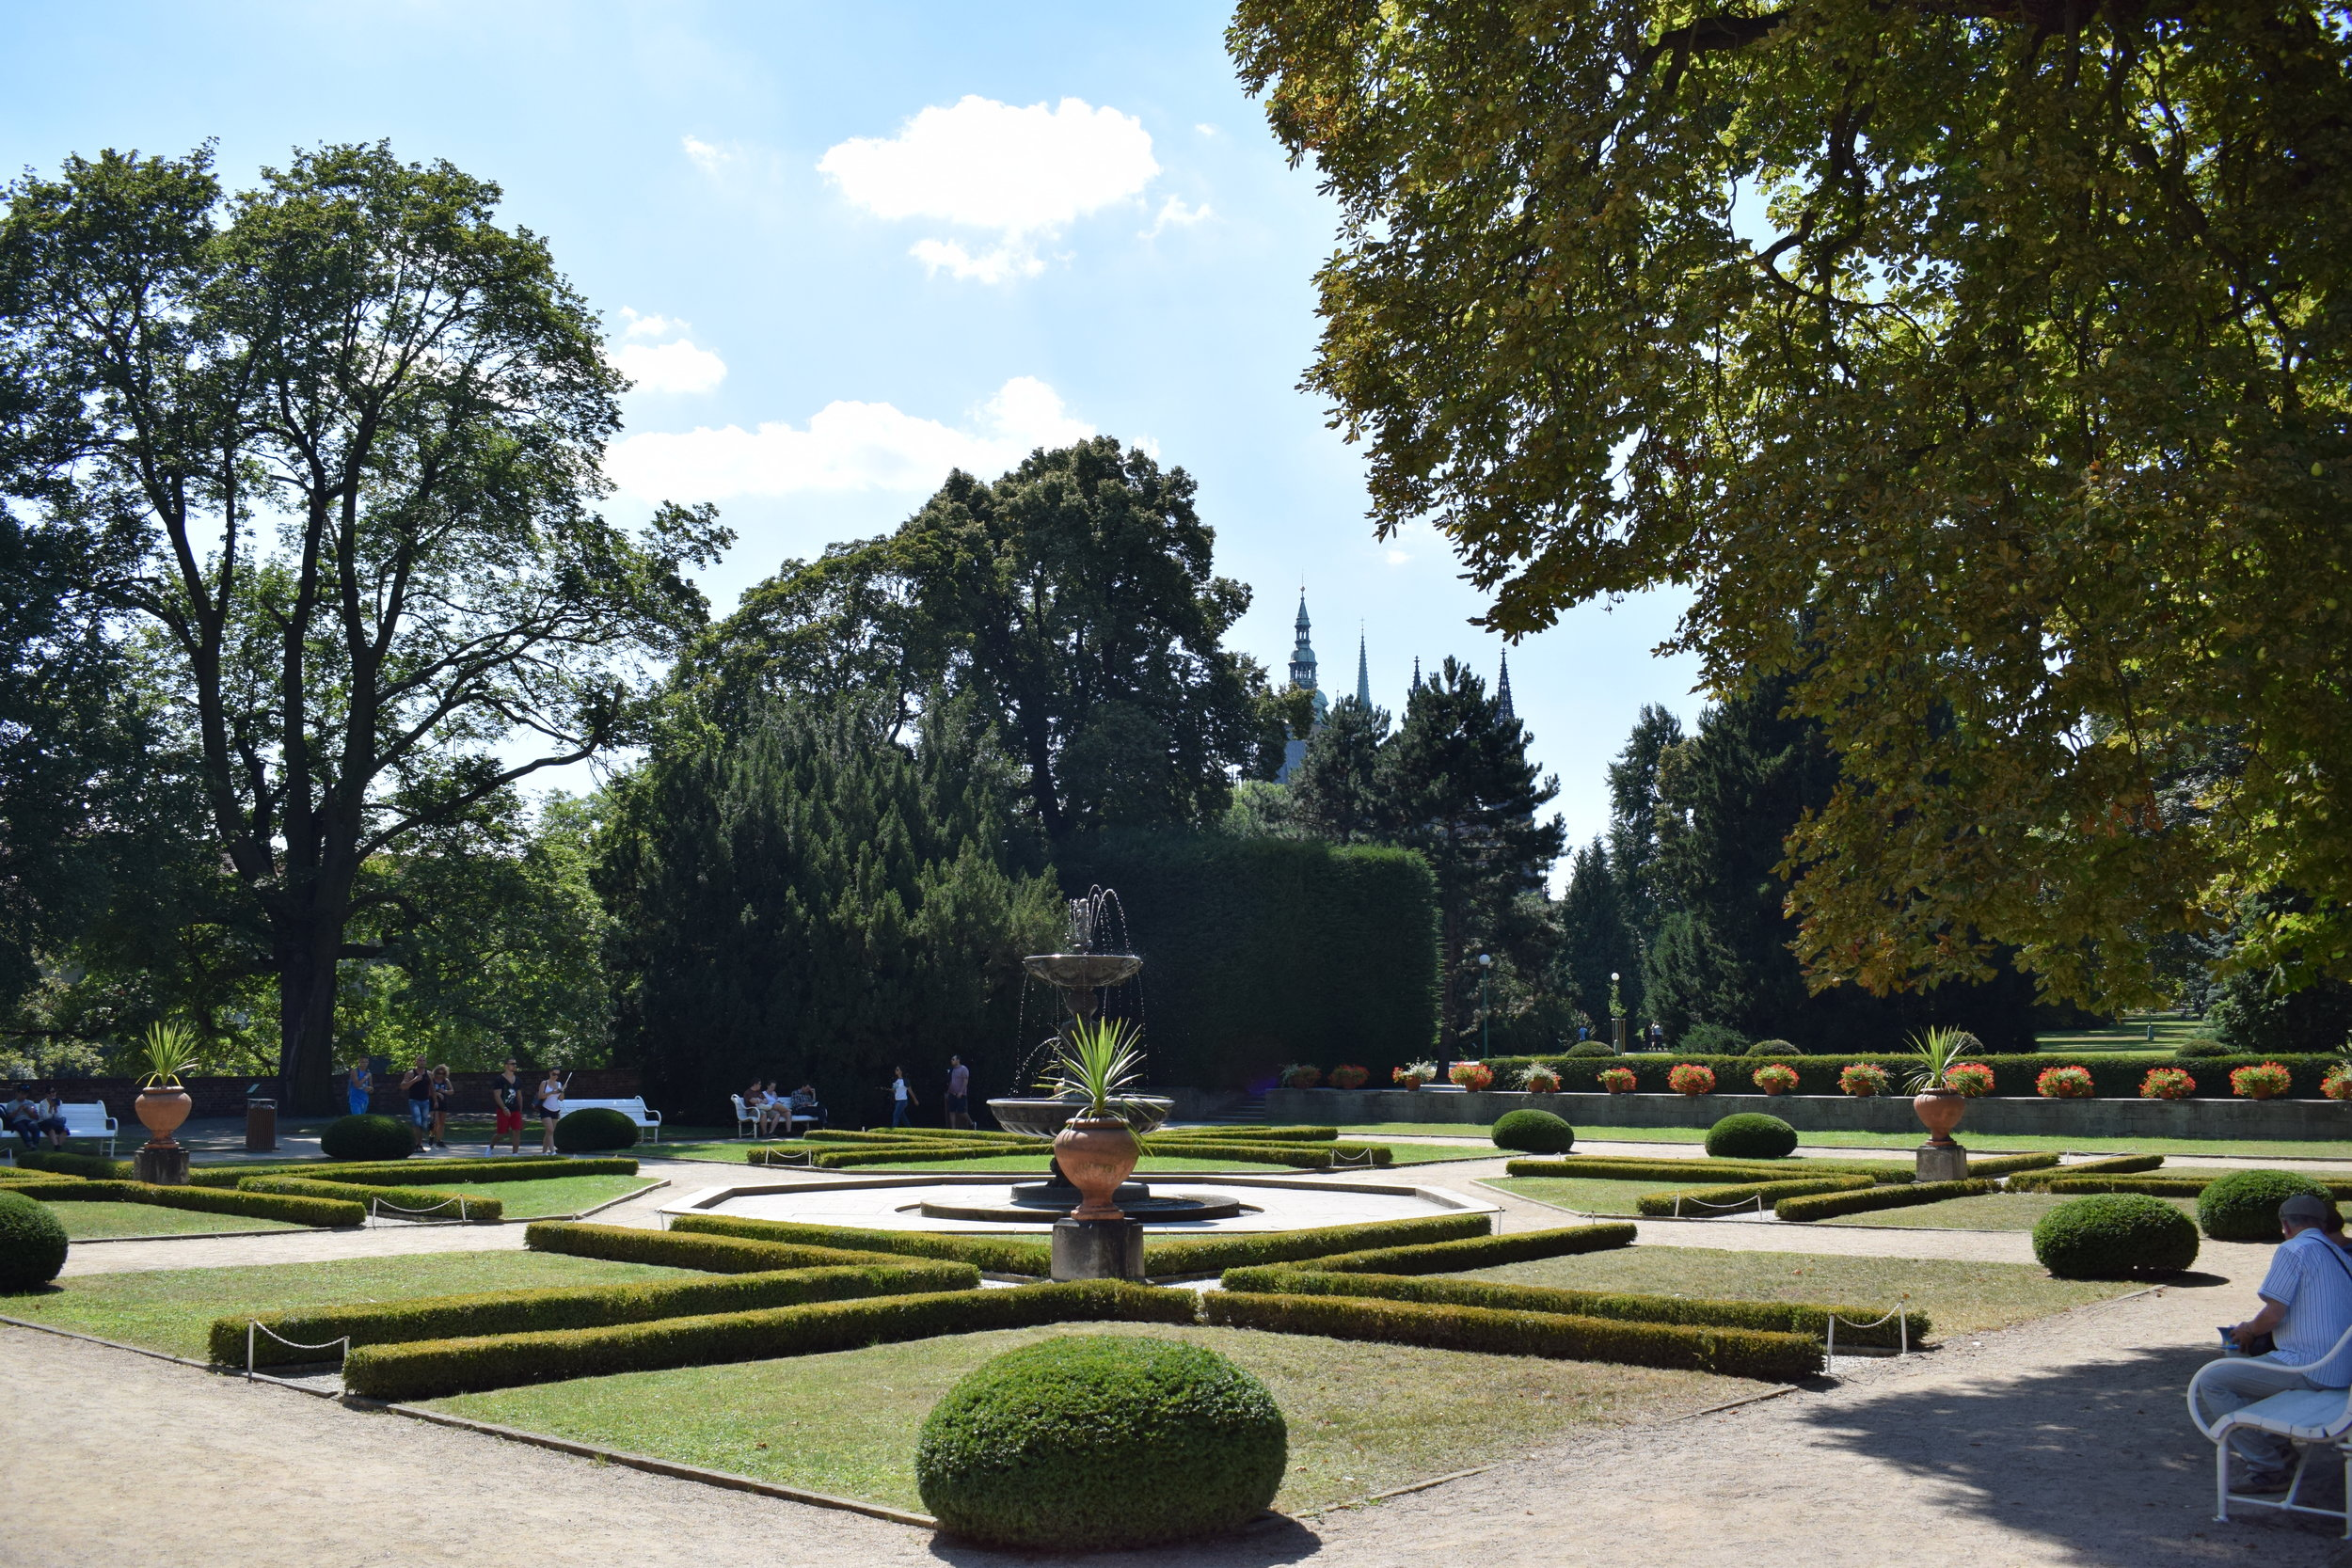 The gardens at Prague Castle illuminated by some midday summer sunlight.